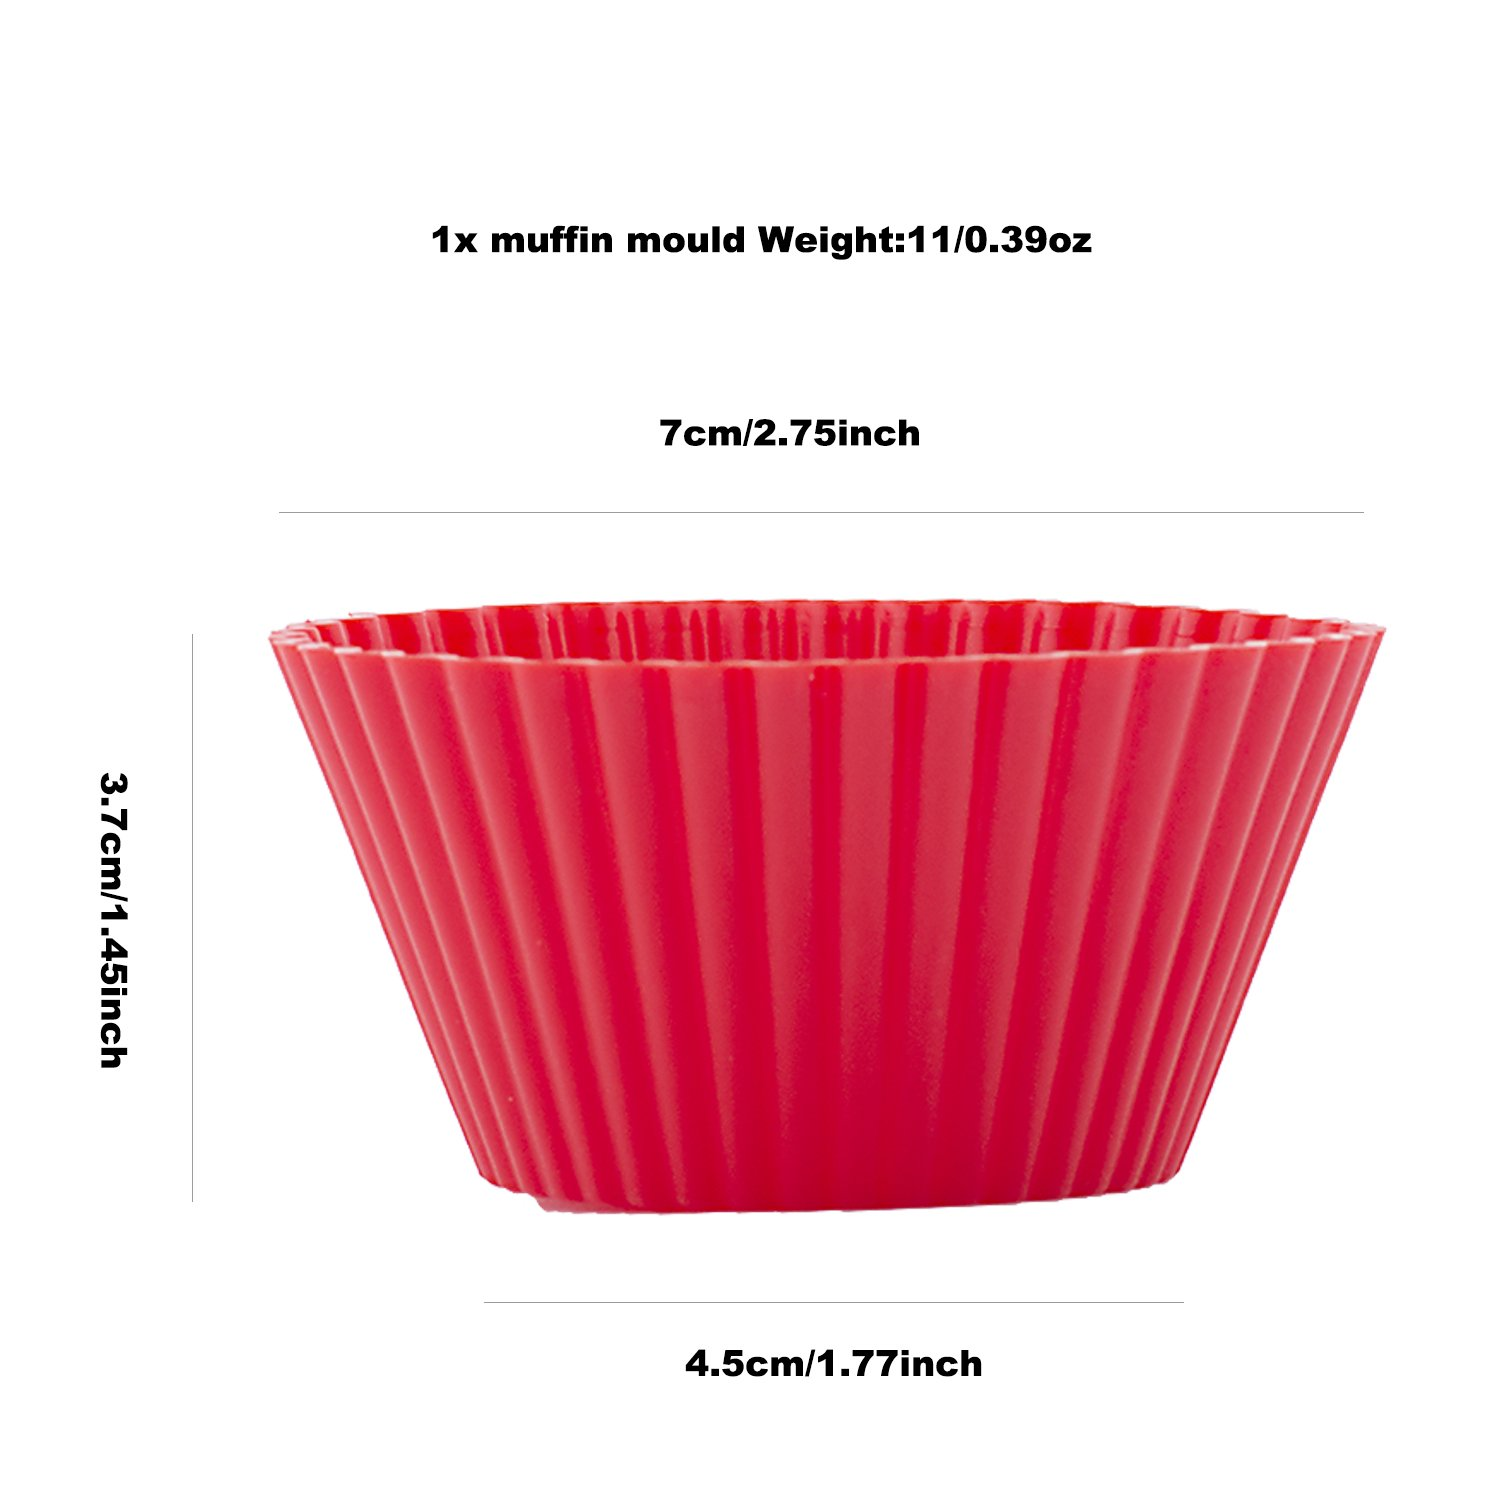 Red Cupcake Cases Silicone Muffin Trays 12 Round Muffin Tray 7cm beicemania/® Gift Pack